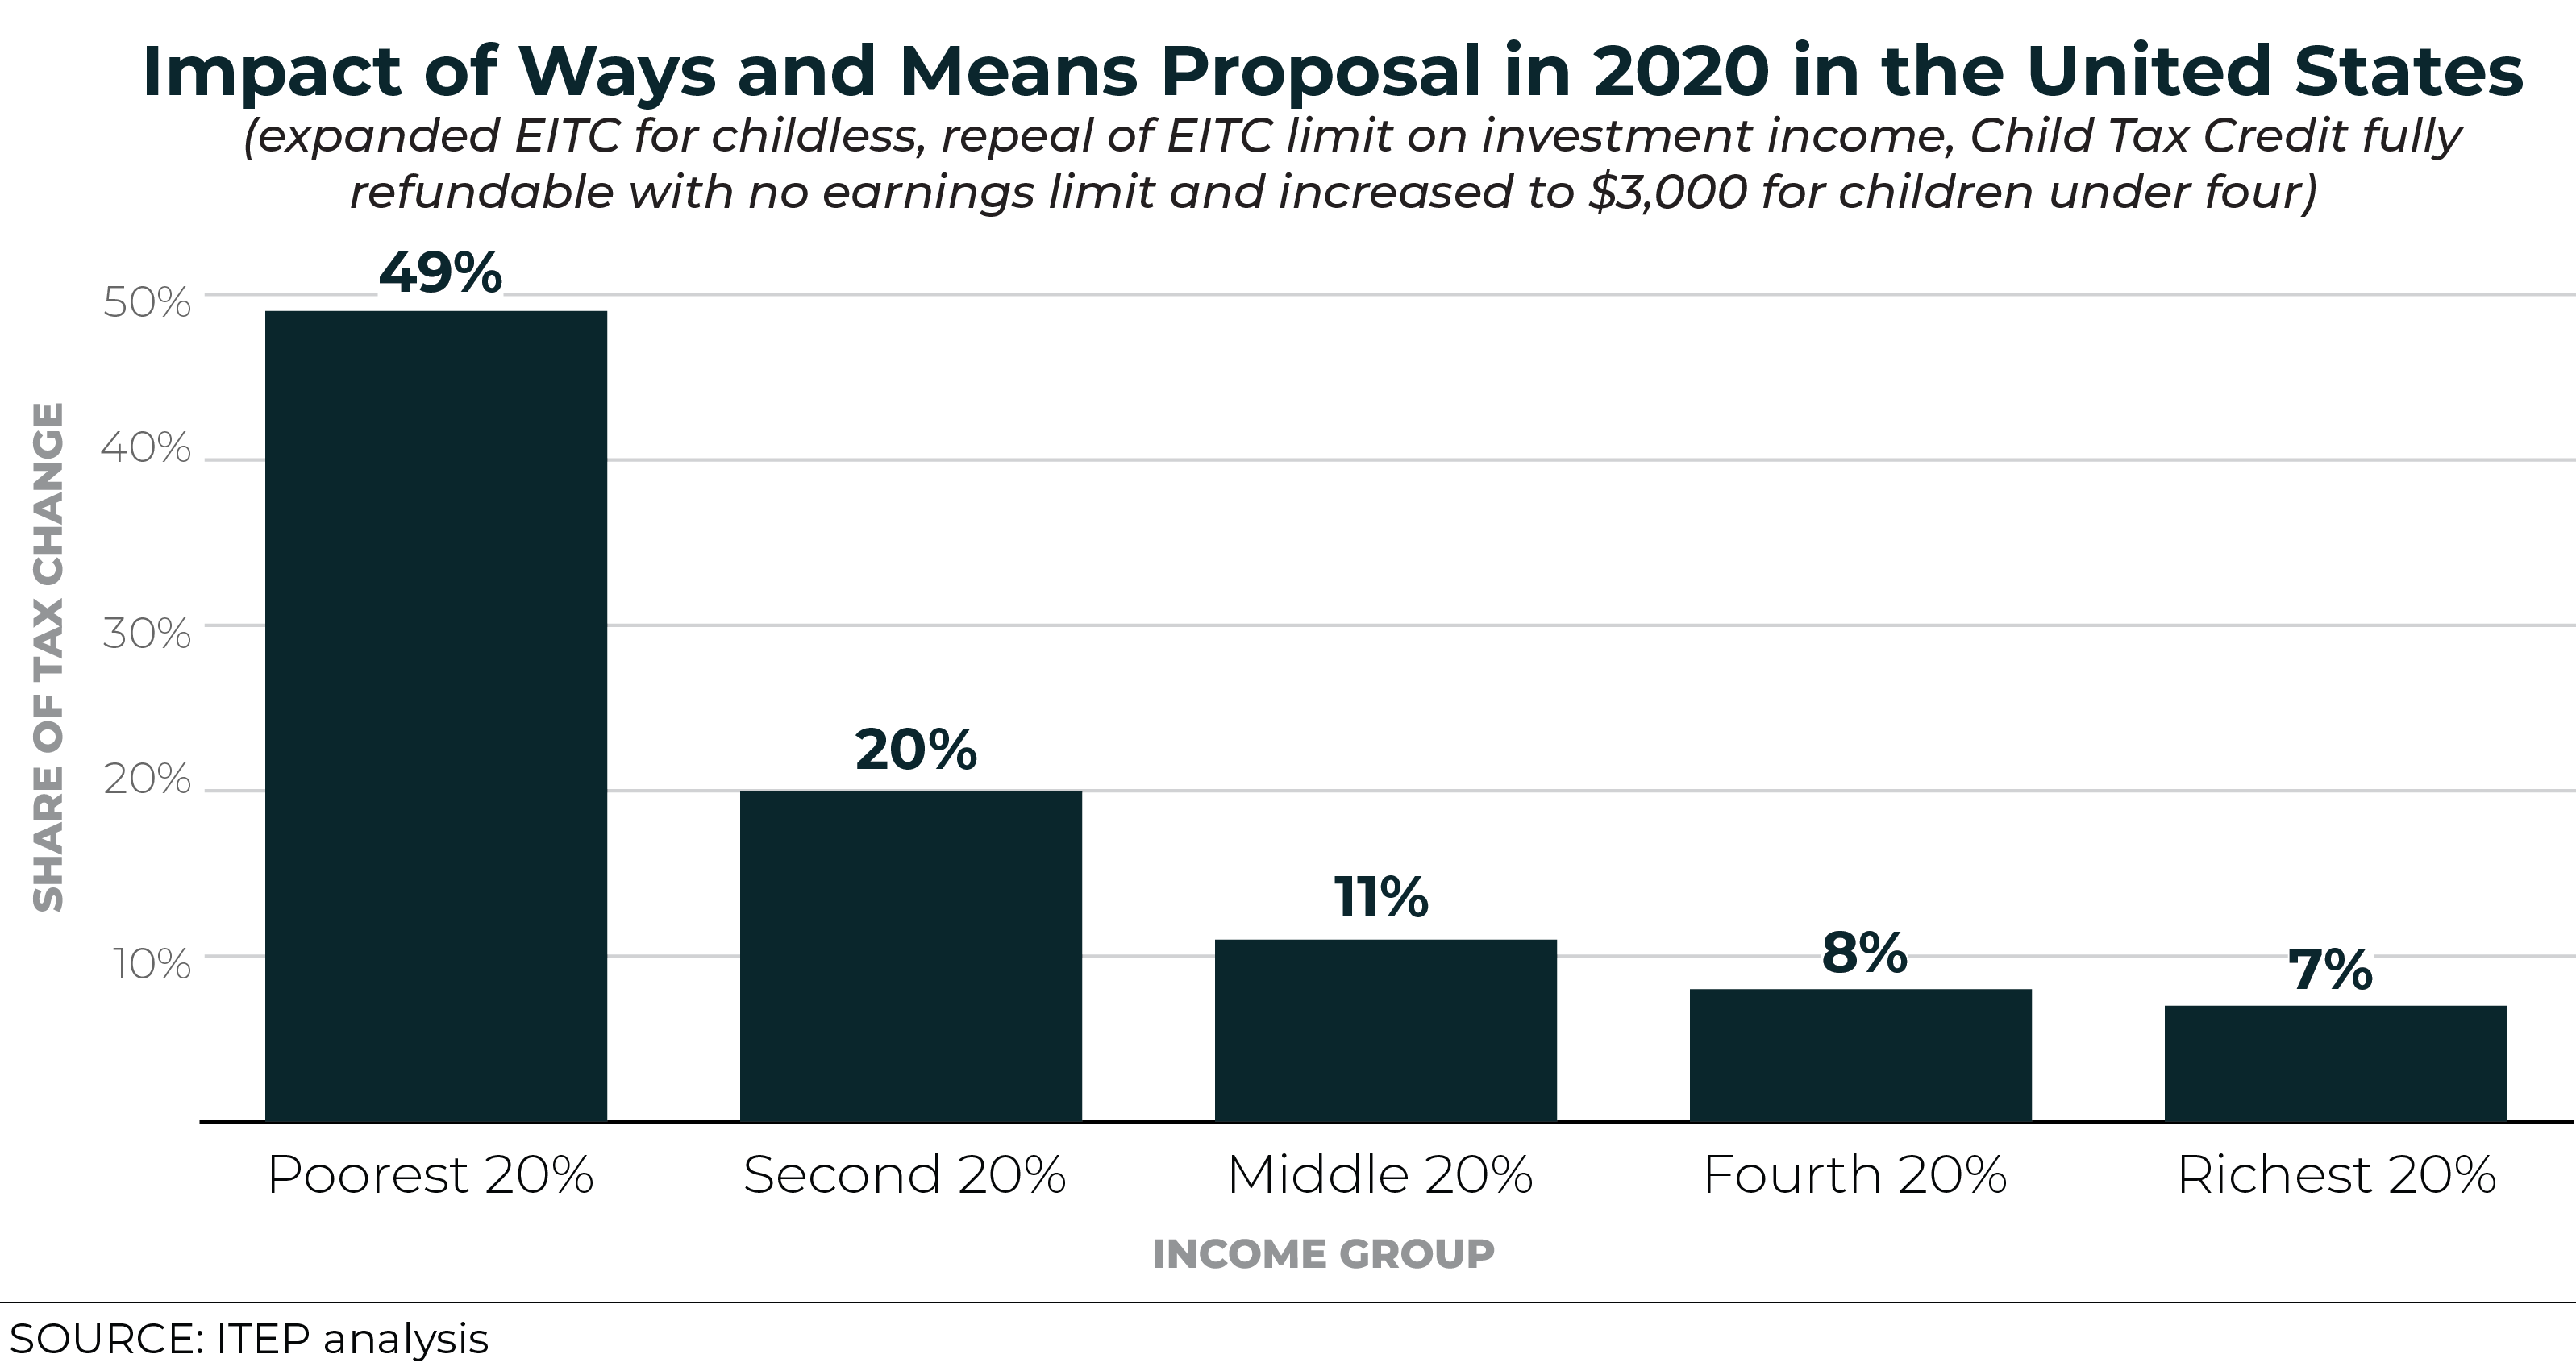 UPDATED: New ITEP Data Shows the House Ways and Means Bill to Expand EITC and Child Tax Credit Would Benefit Low- and Moderate-Income People and Families